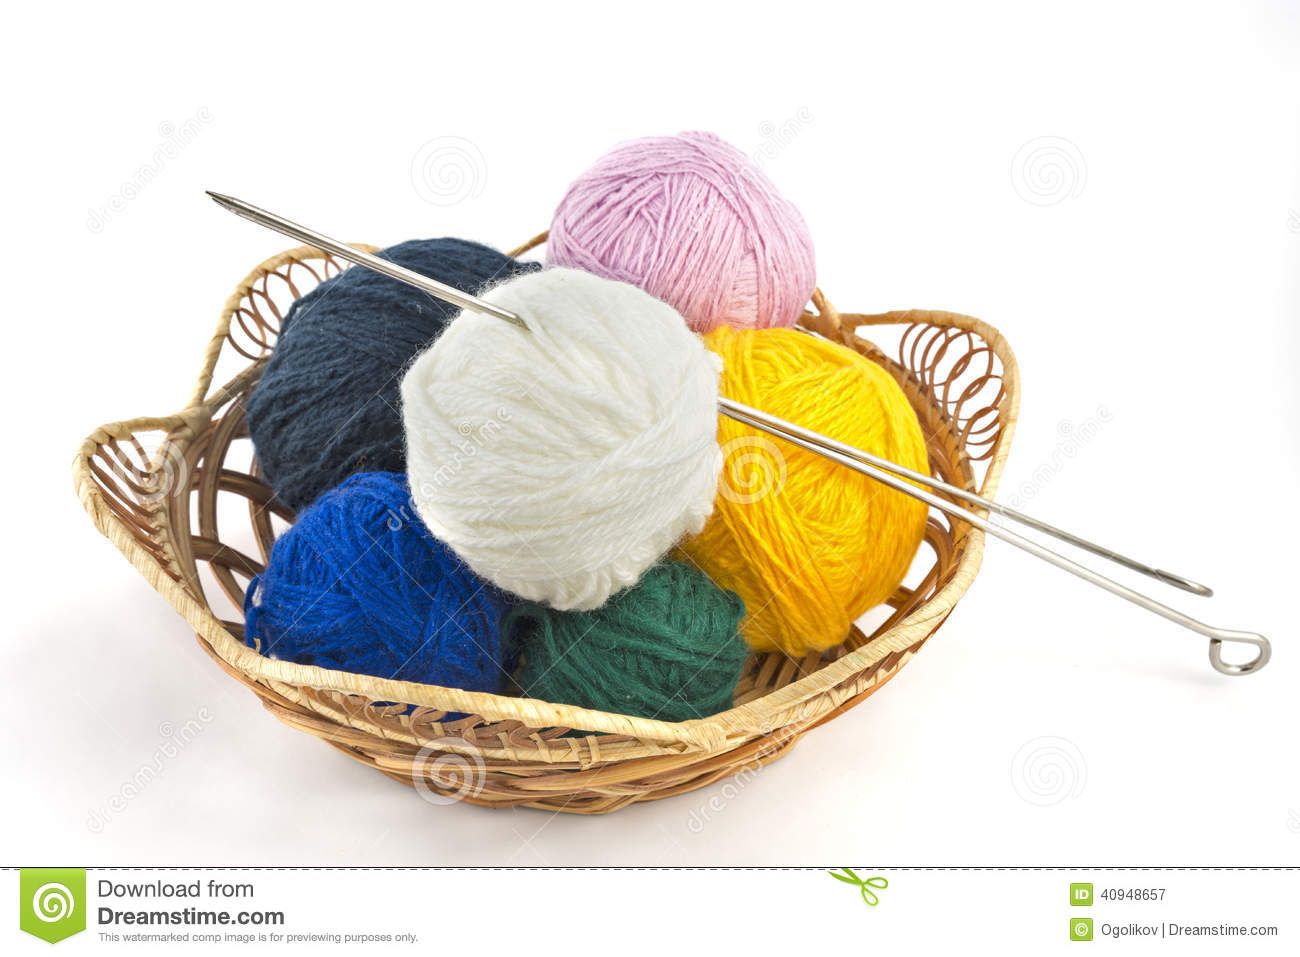 Knitting Basket Yarn : Knitting yarn balls and needles in basket on a white